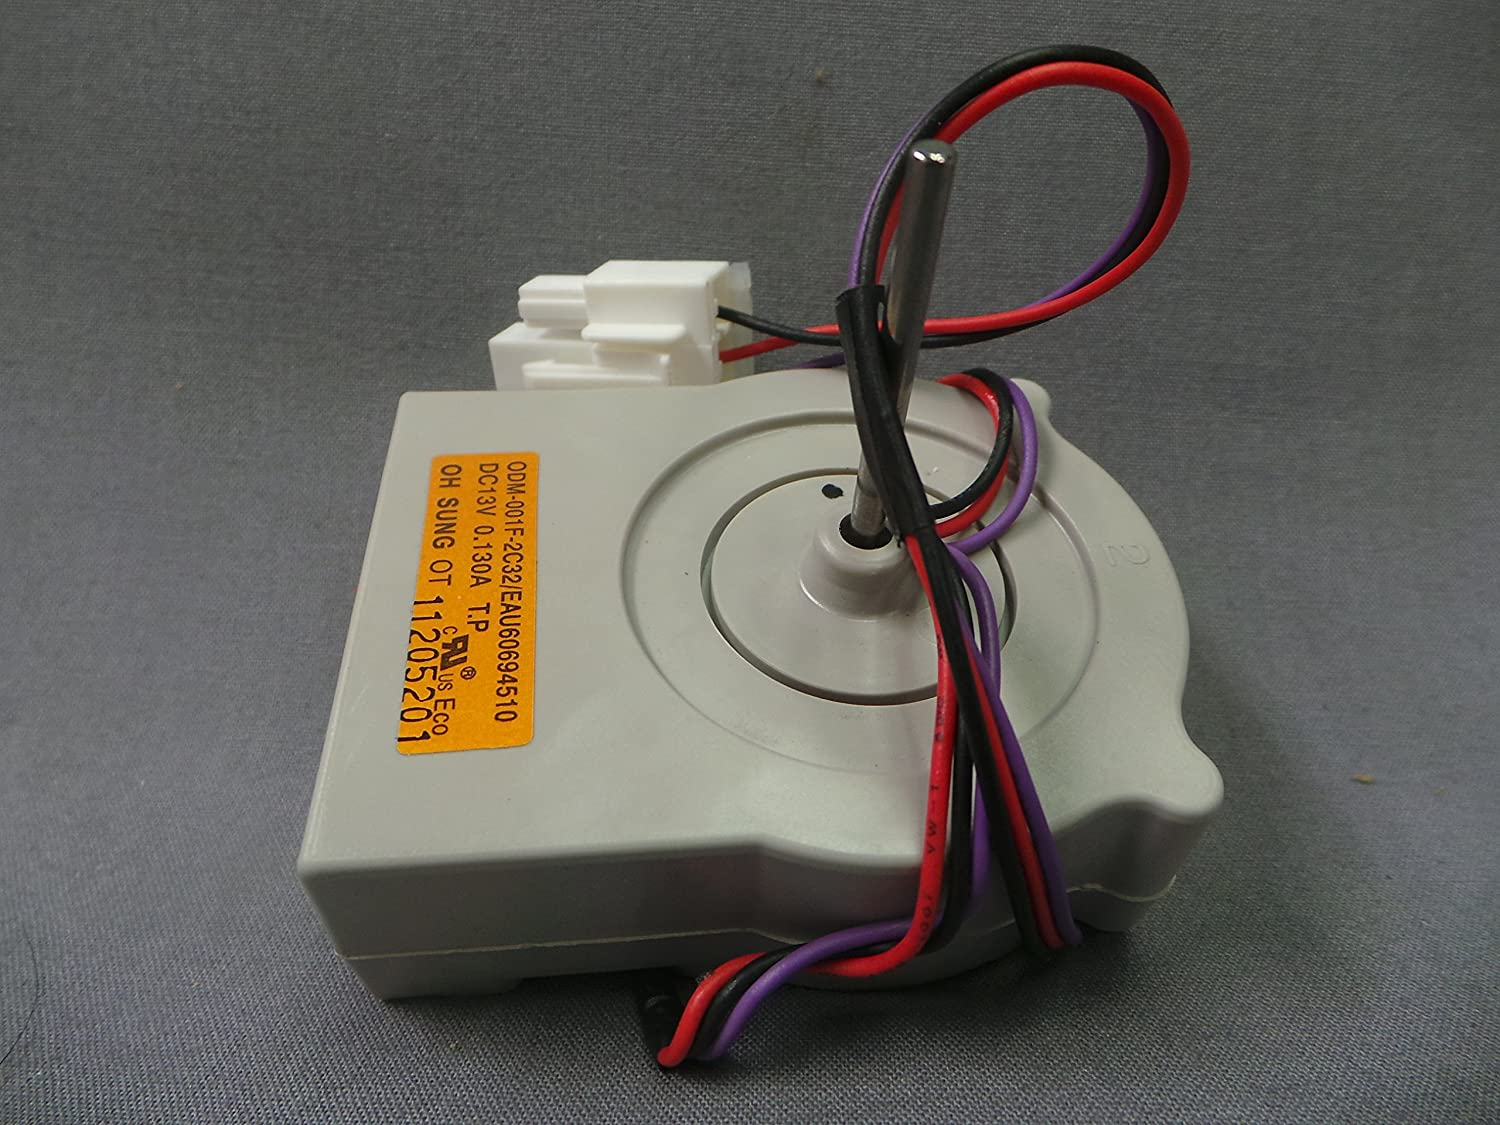 Lg 4681JB1027C Refrigerator Evaporator Fan Motor Genuine Original Equipment Manufacturer (OEM) Part